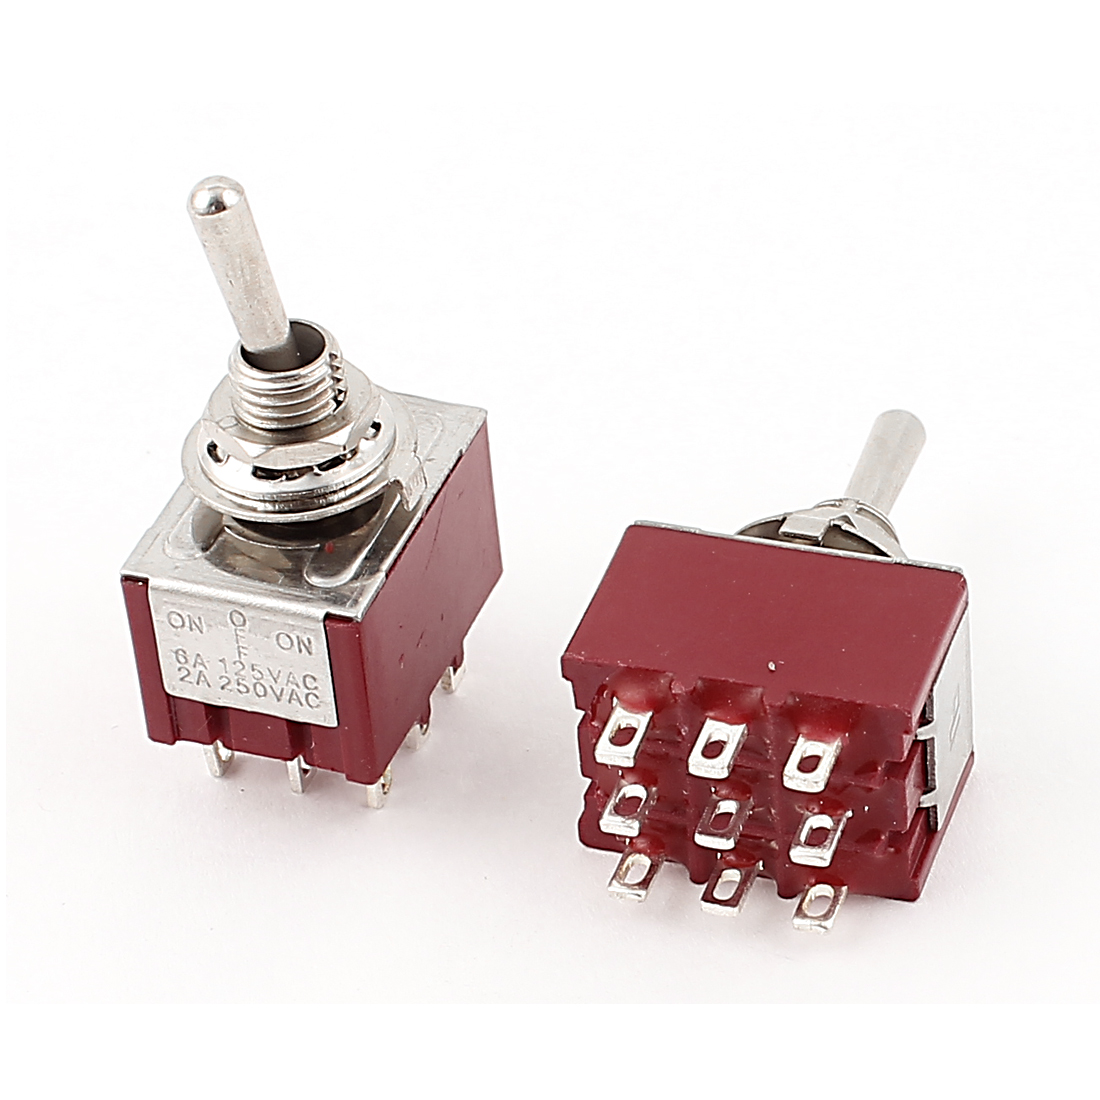 AC 250V 2A 3 Positions ON OFF ON 3PDT Latching Toggle Switch